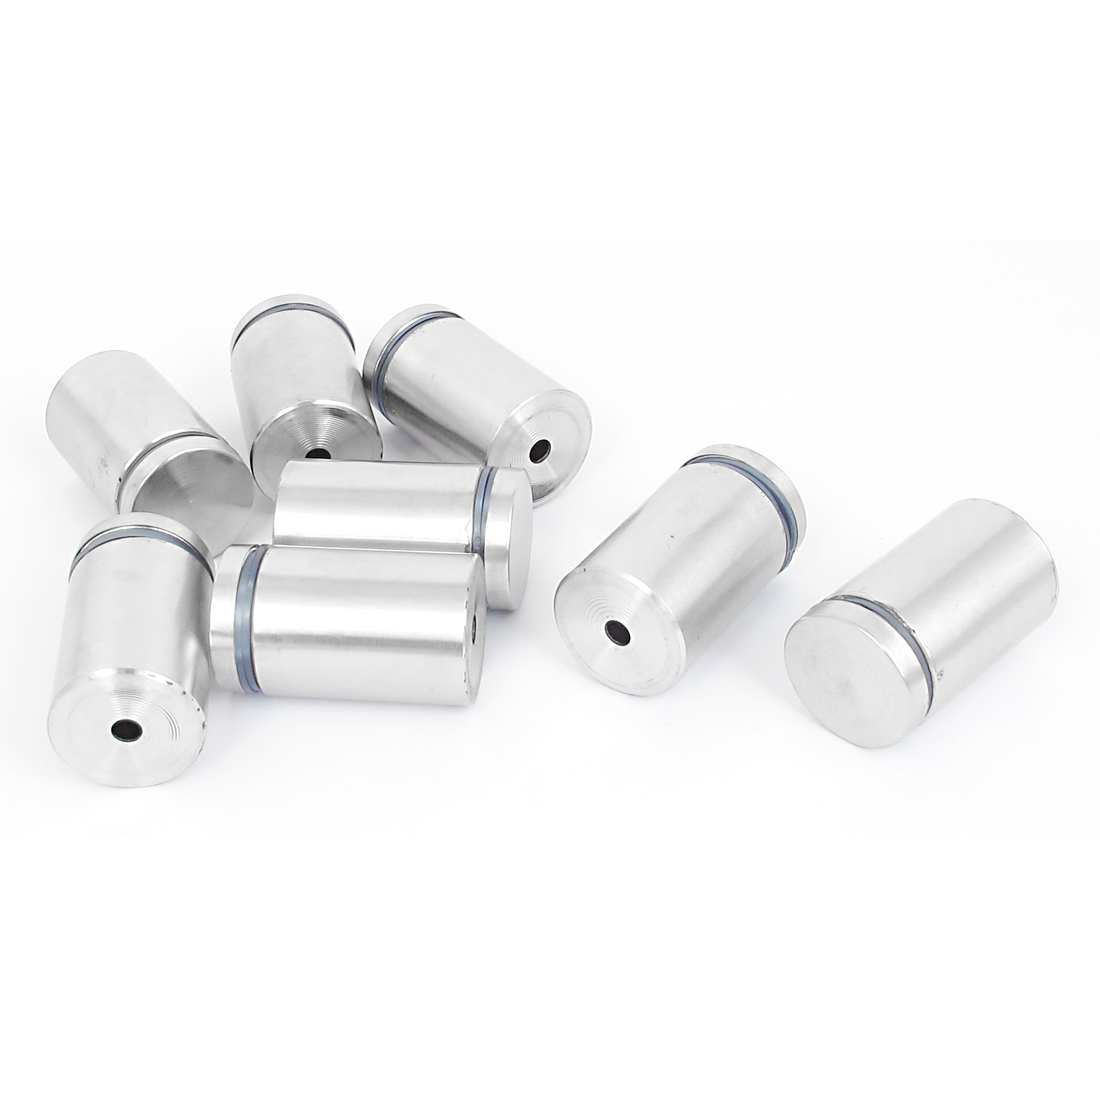 25mm x 40mm Stainless Steel Advertising Frameless Glass Standoff Pin Clamp 8pcs